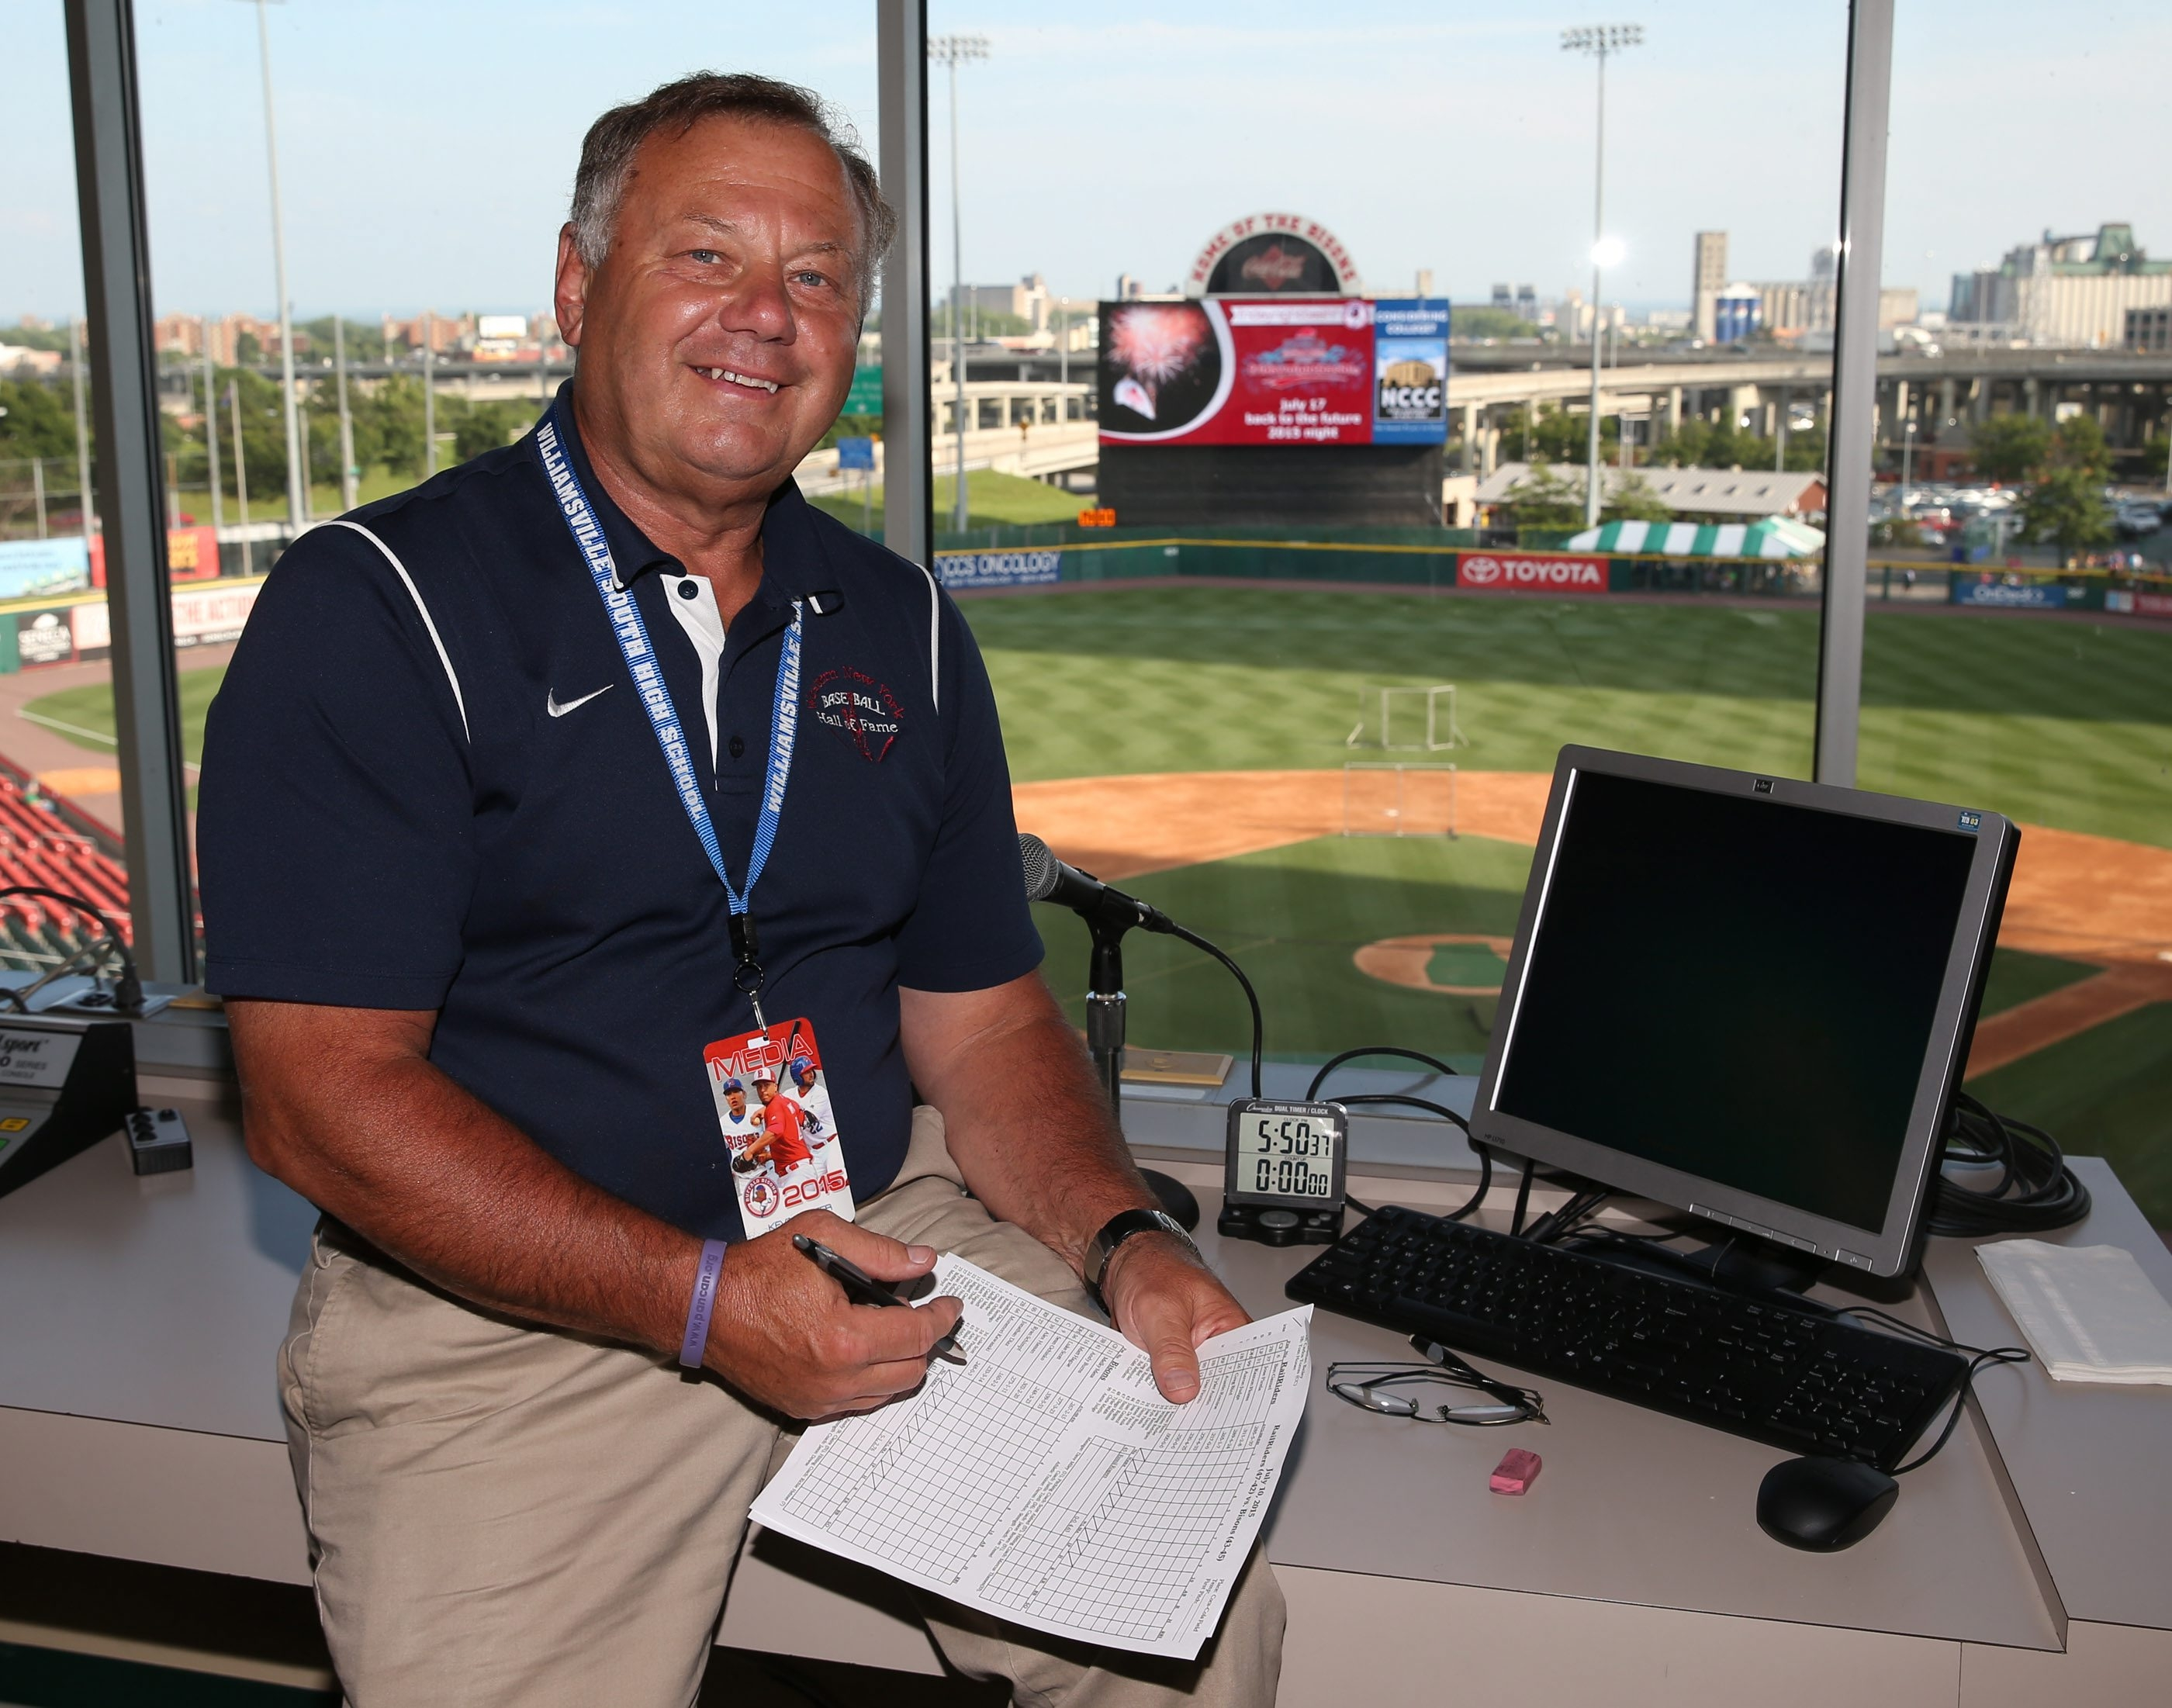 Kevin Lester has been a constant presence in the Bisons' press box over the years, mostly in the role of official scorer. Soon he can call himself a Hall of Famer.